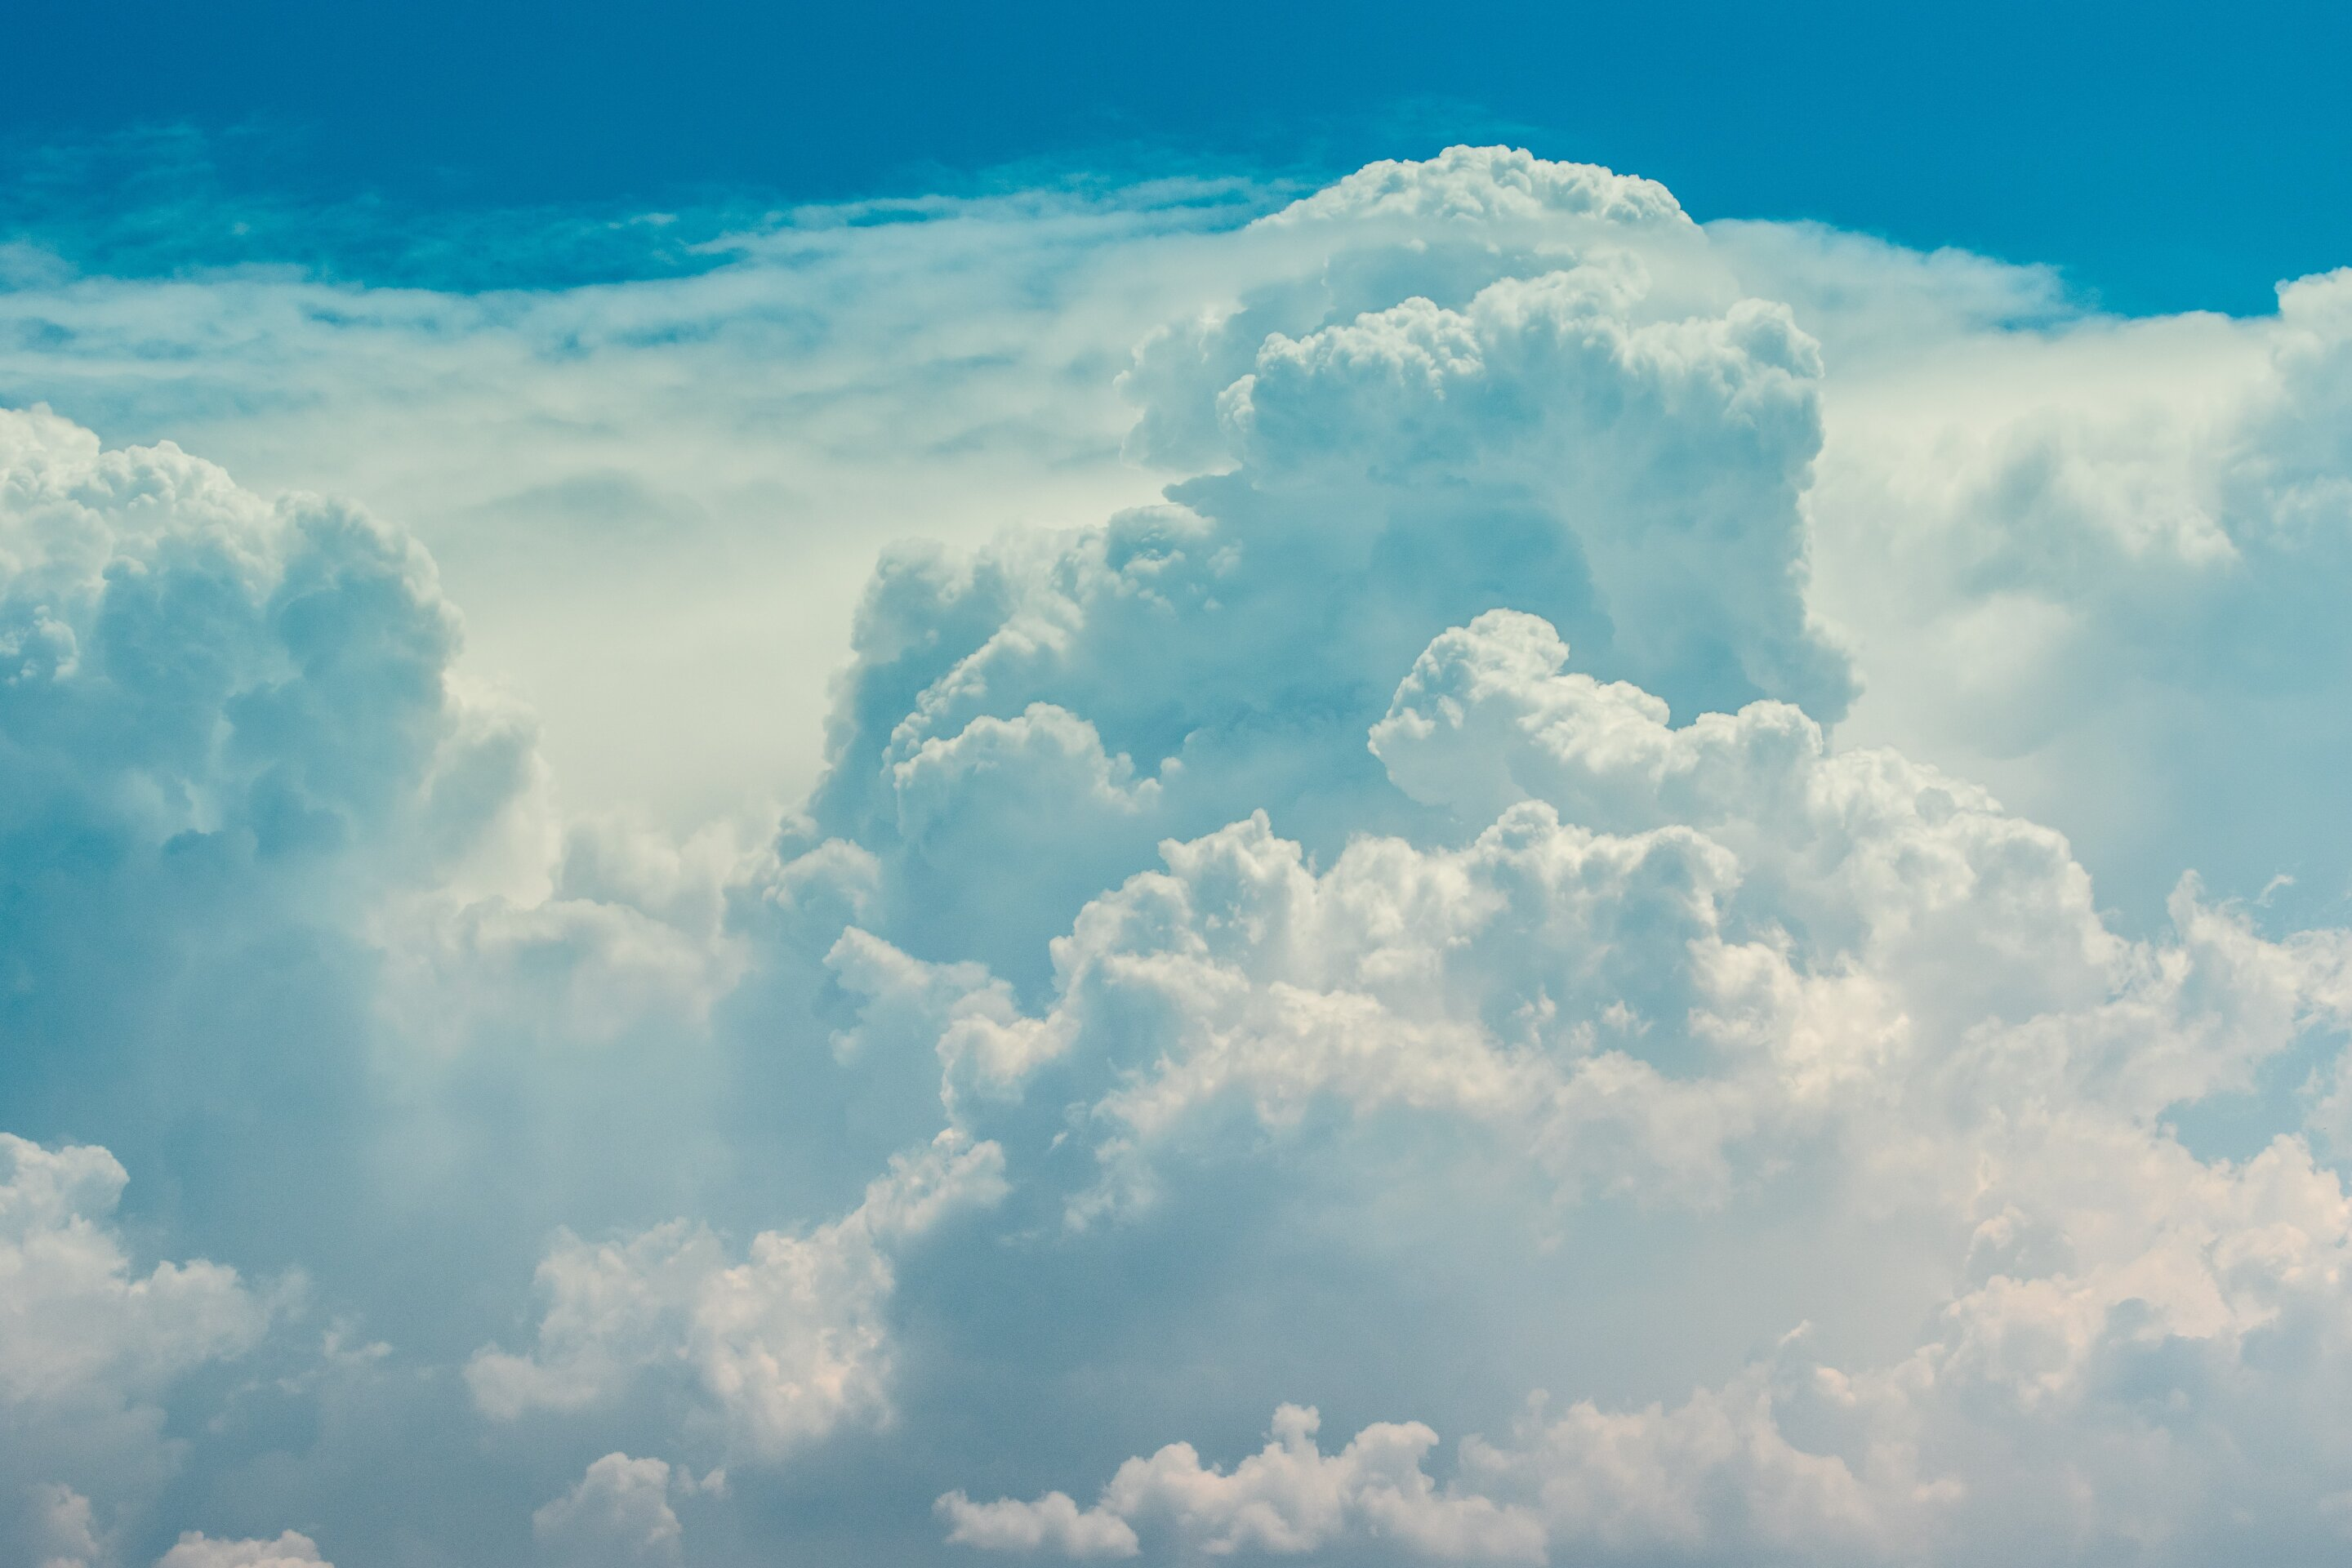 Observations confirm that aerosols formed from plant-emitted compounds can make clouds brighter